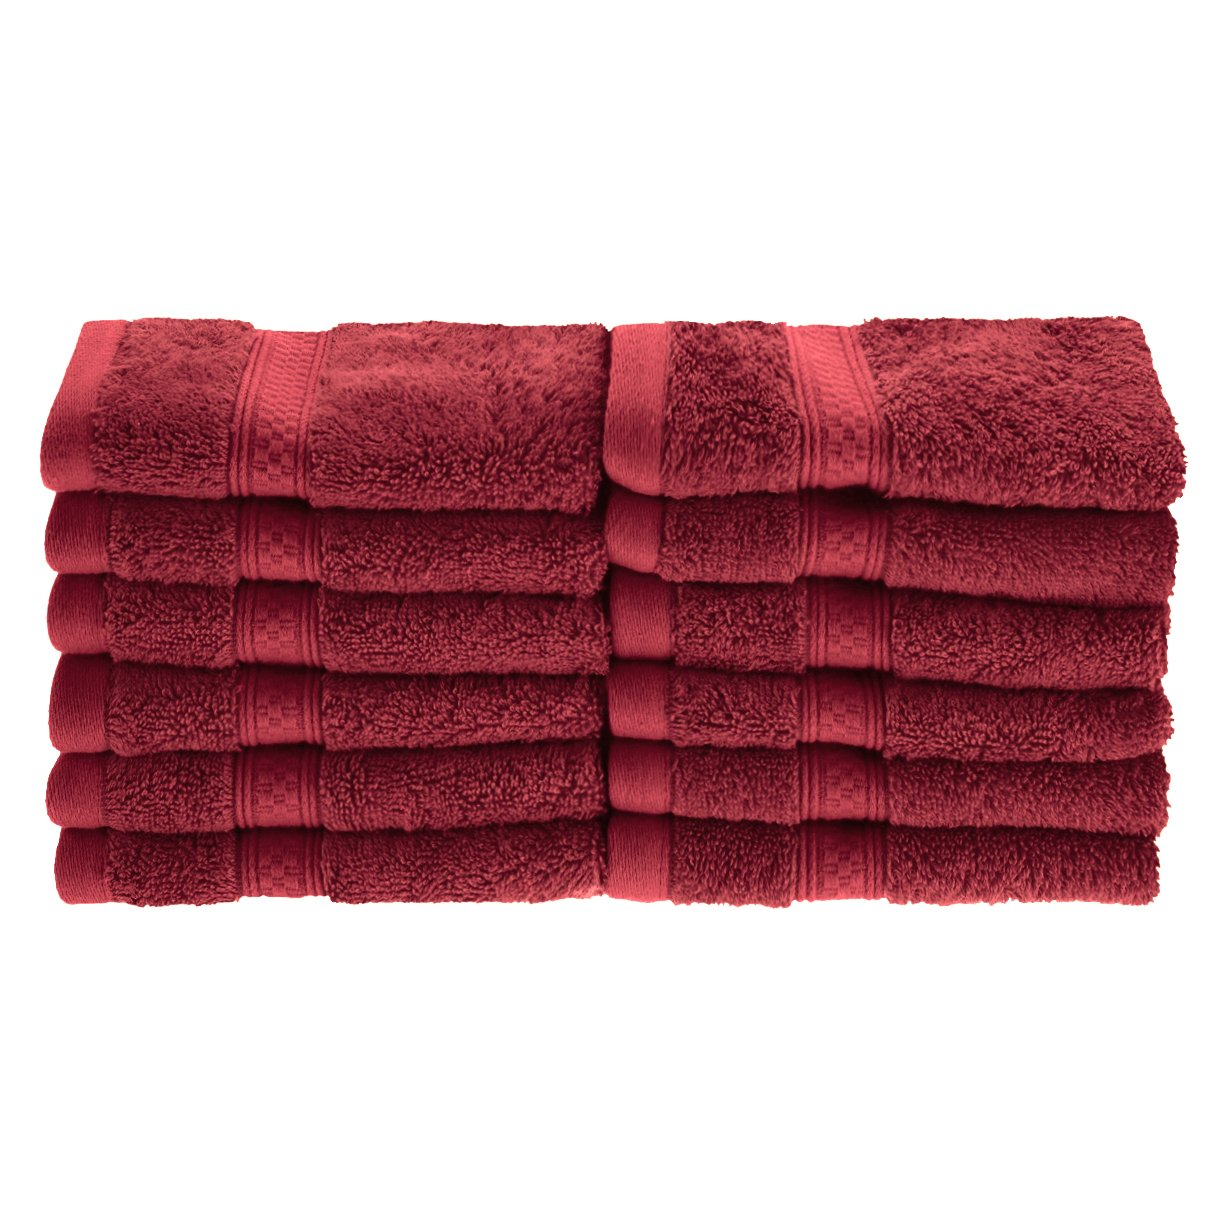 Superior Rayon from Bamboo and Cotton Face Towels, Velvety Soft and Super Absorbent, Hotel & Spa Quality Washcloth Set of 12 - Crimson, 13'' x 13'' each